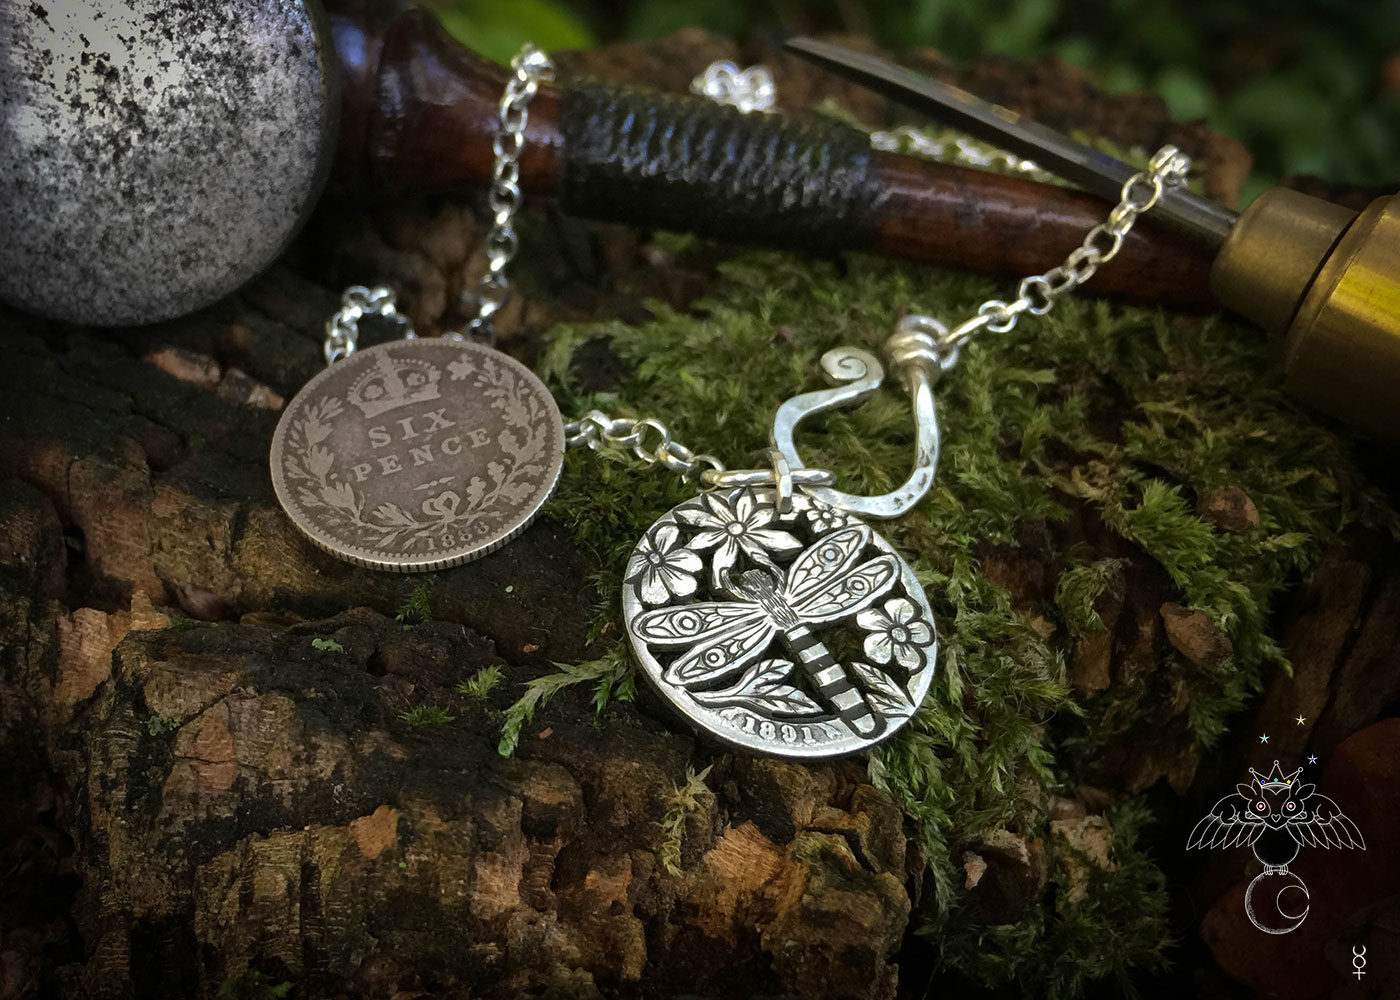 Dragonfly necklace Handmade and repurposed silver shilling The Silver sixpence collection. silver Dragonfly necklace totally handcrafted and recycled from old sterling silver sixpence coins. Designed and created by Hairy Growler Jewellery, Cambridge, UK. necklace